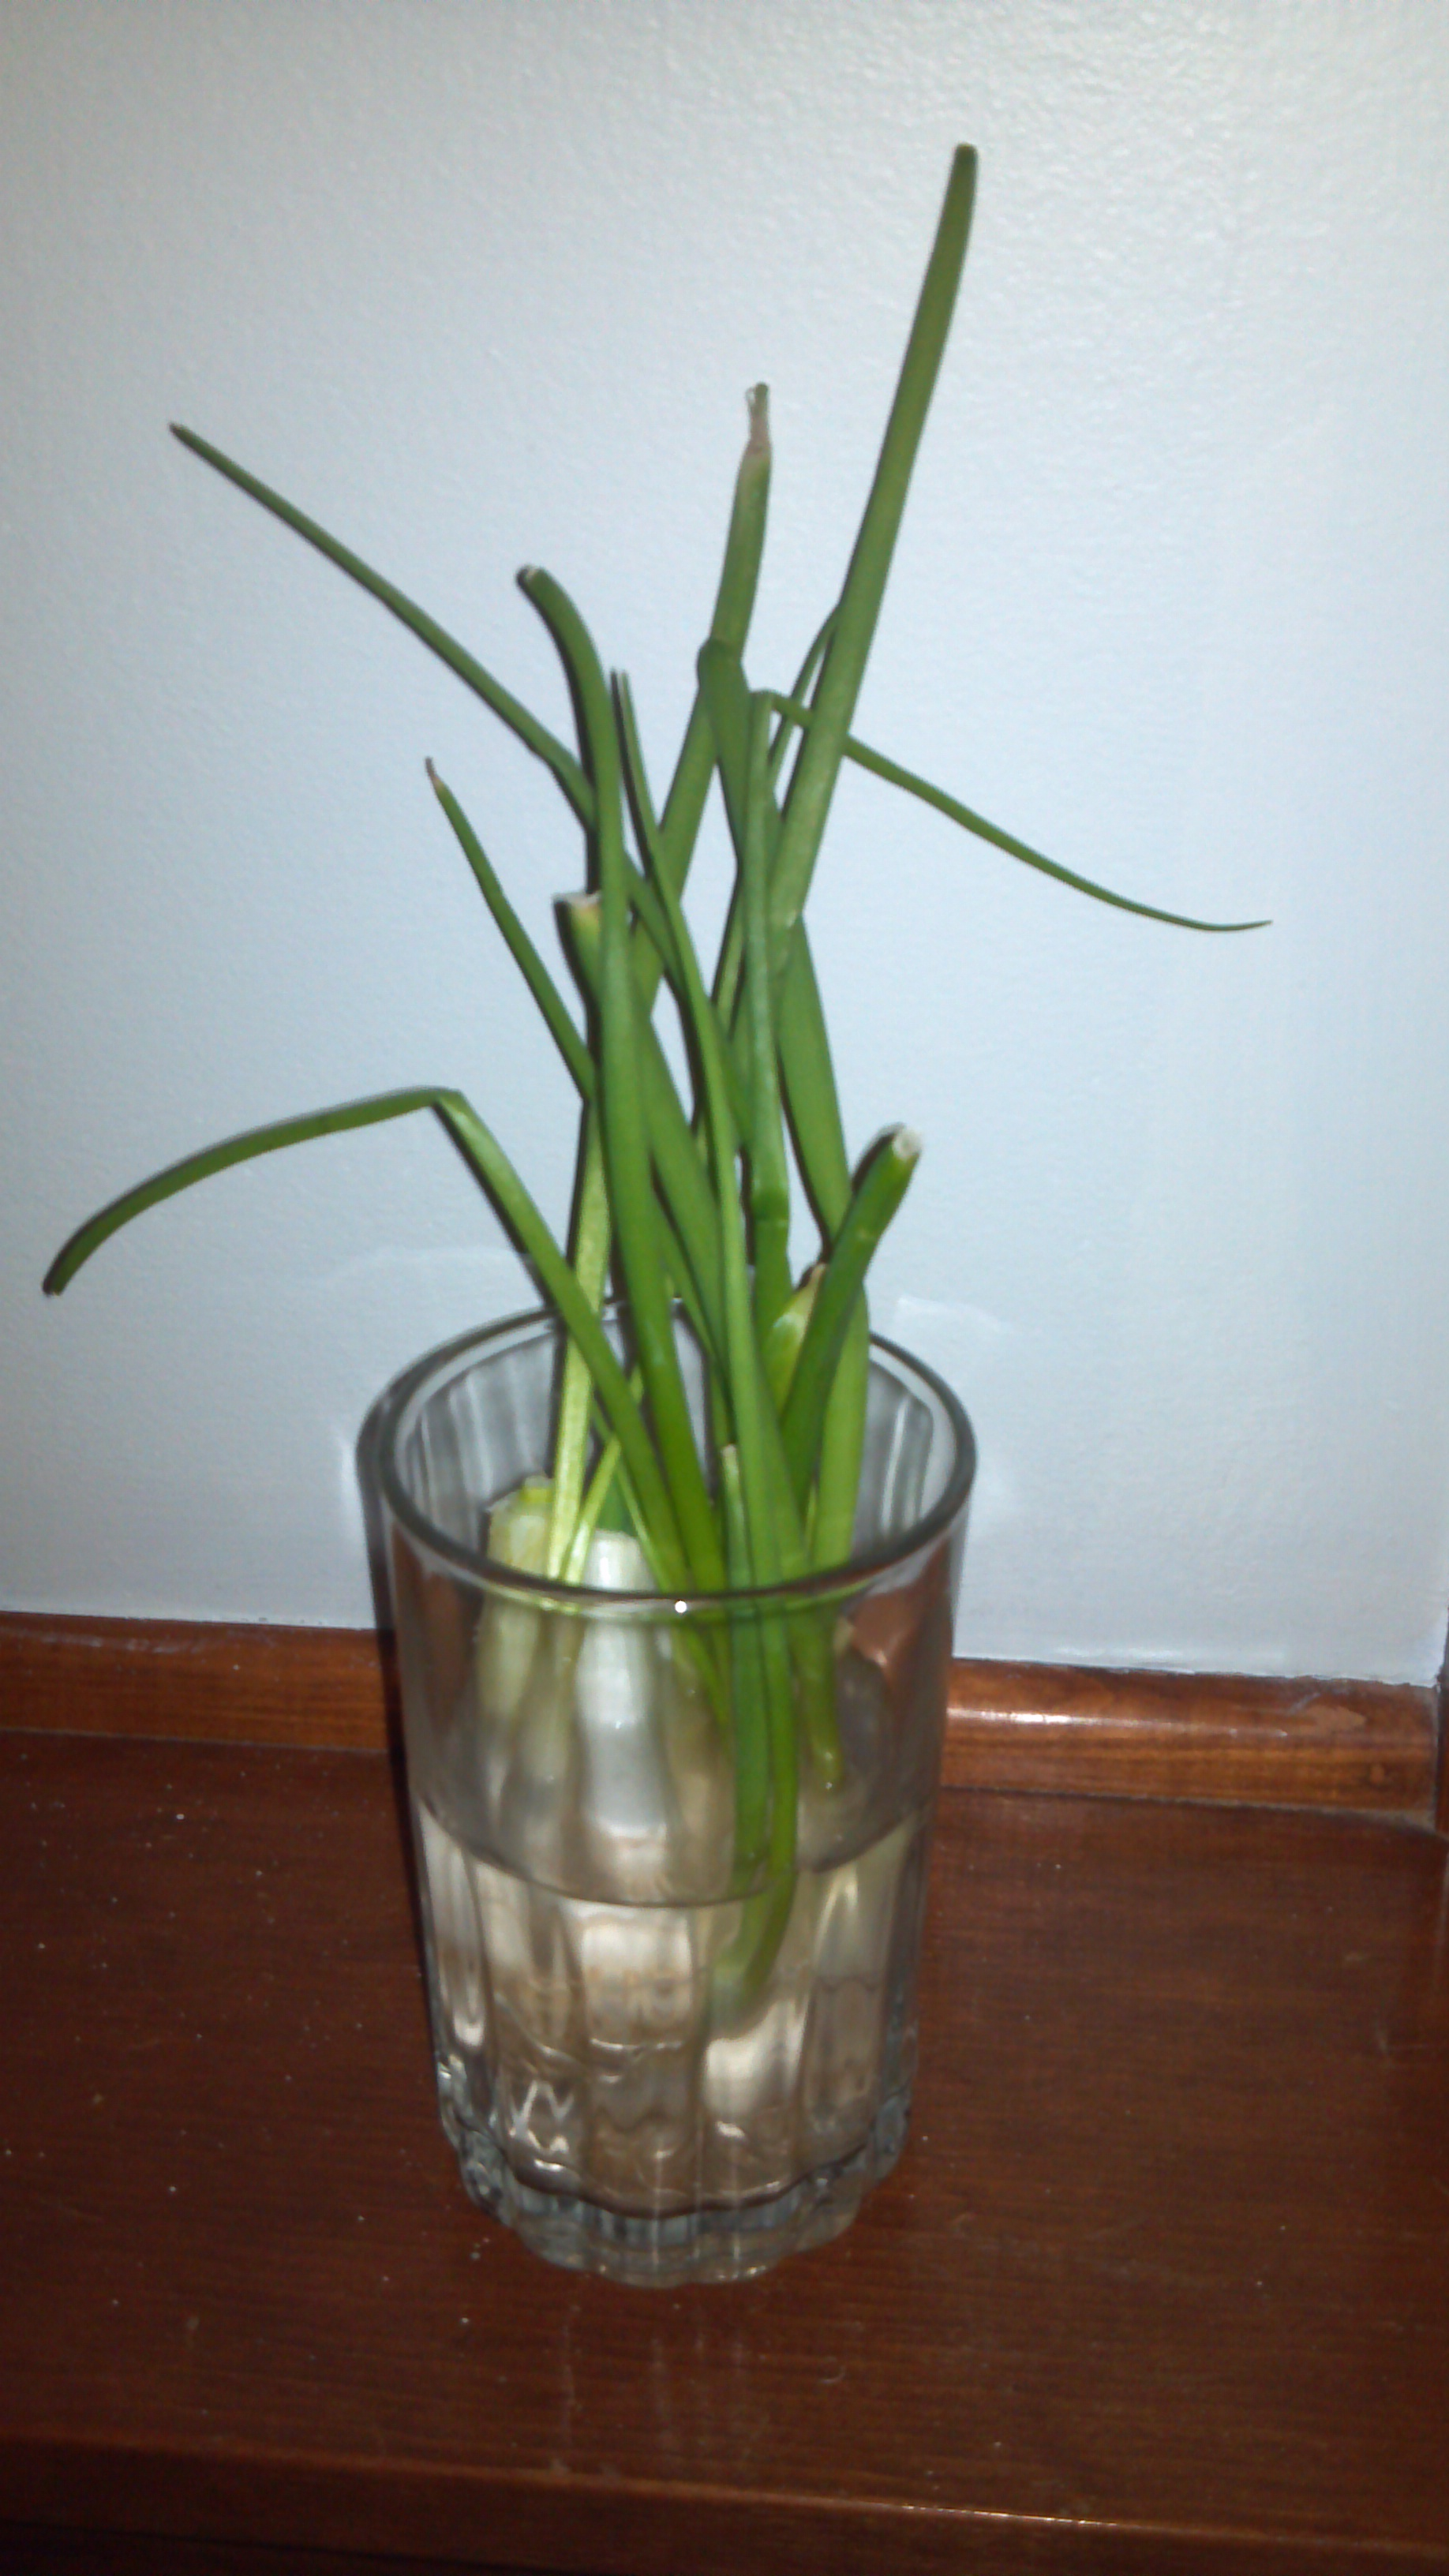 *Growing Green Onions*